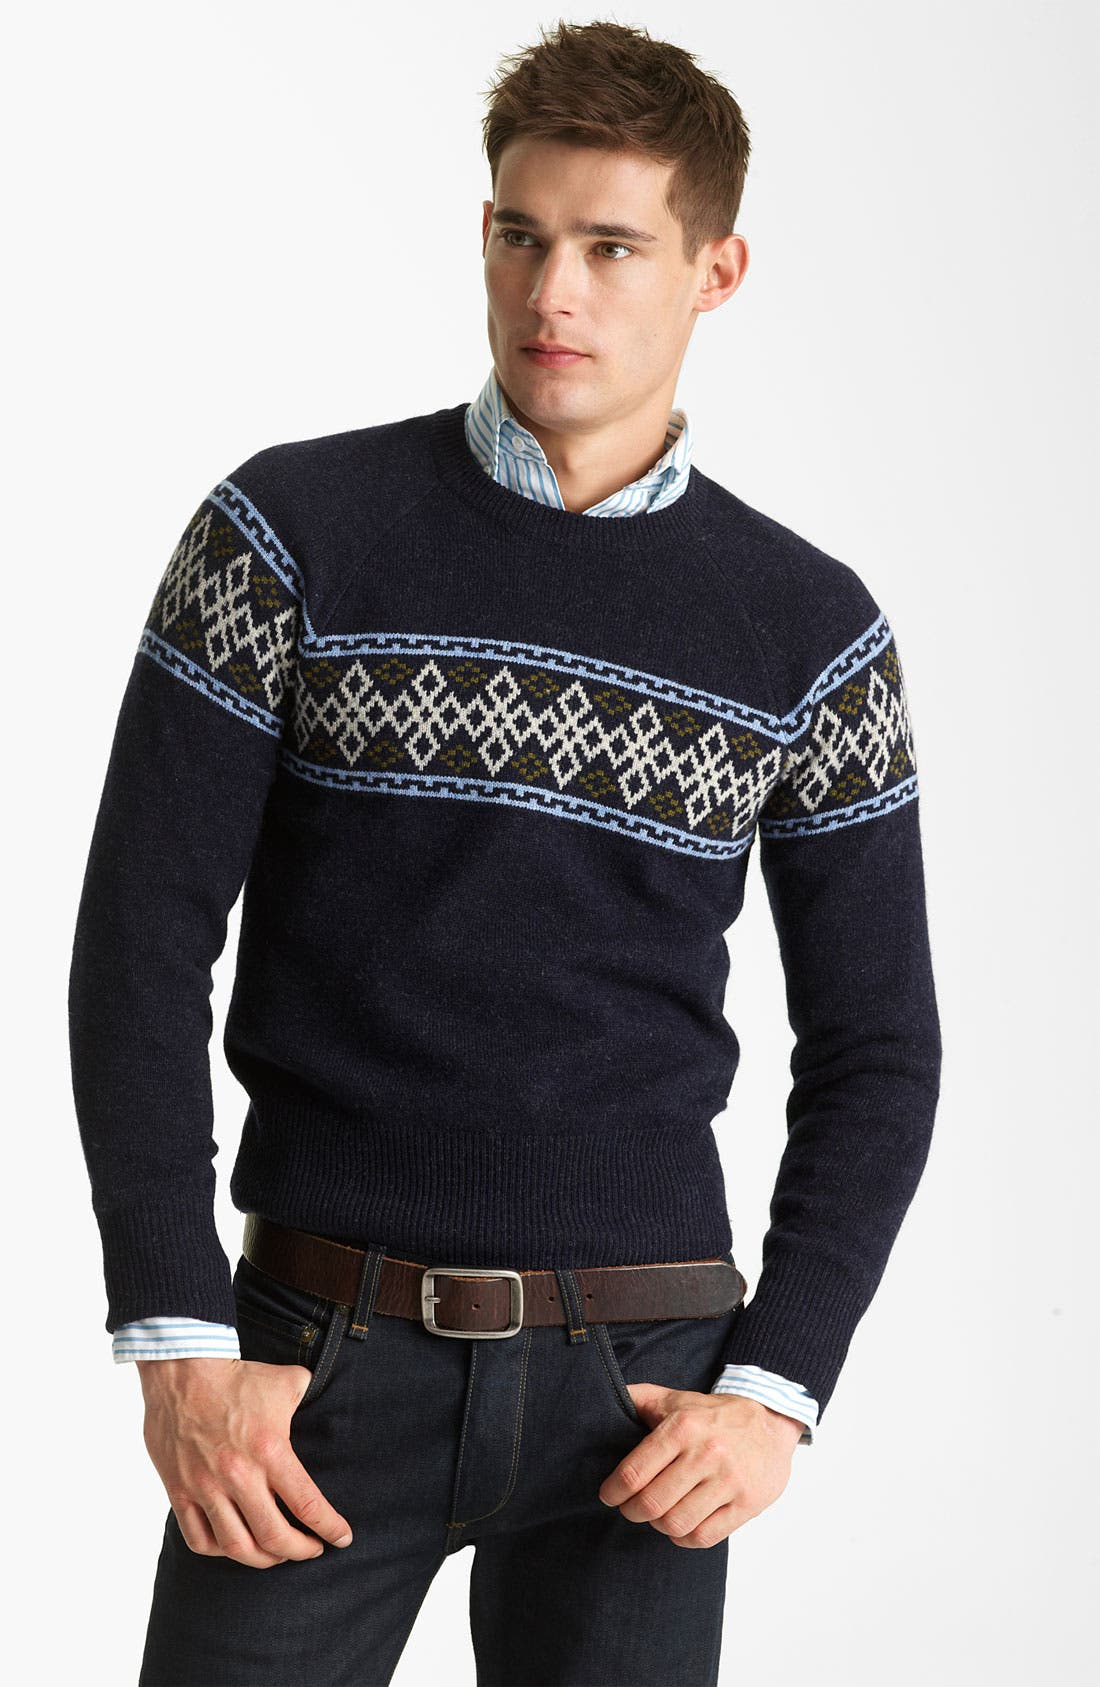 GANT BY MICHAEL BASTIAN, Wool Crewneck Sweater, Main thumbnail 1, color, 410